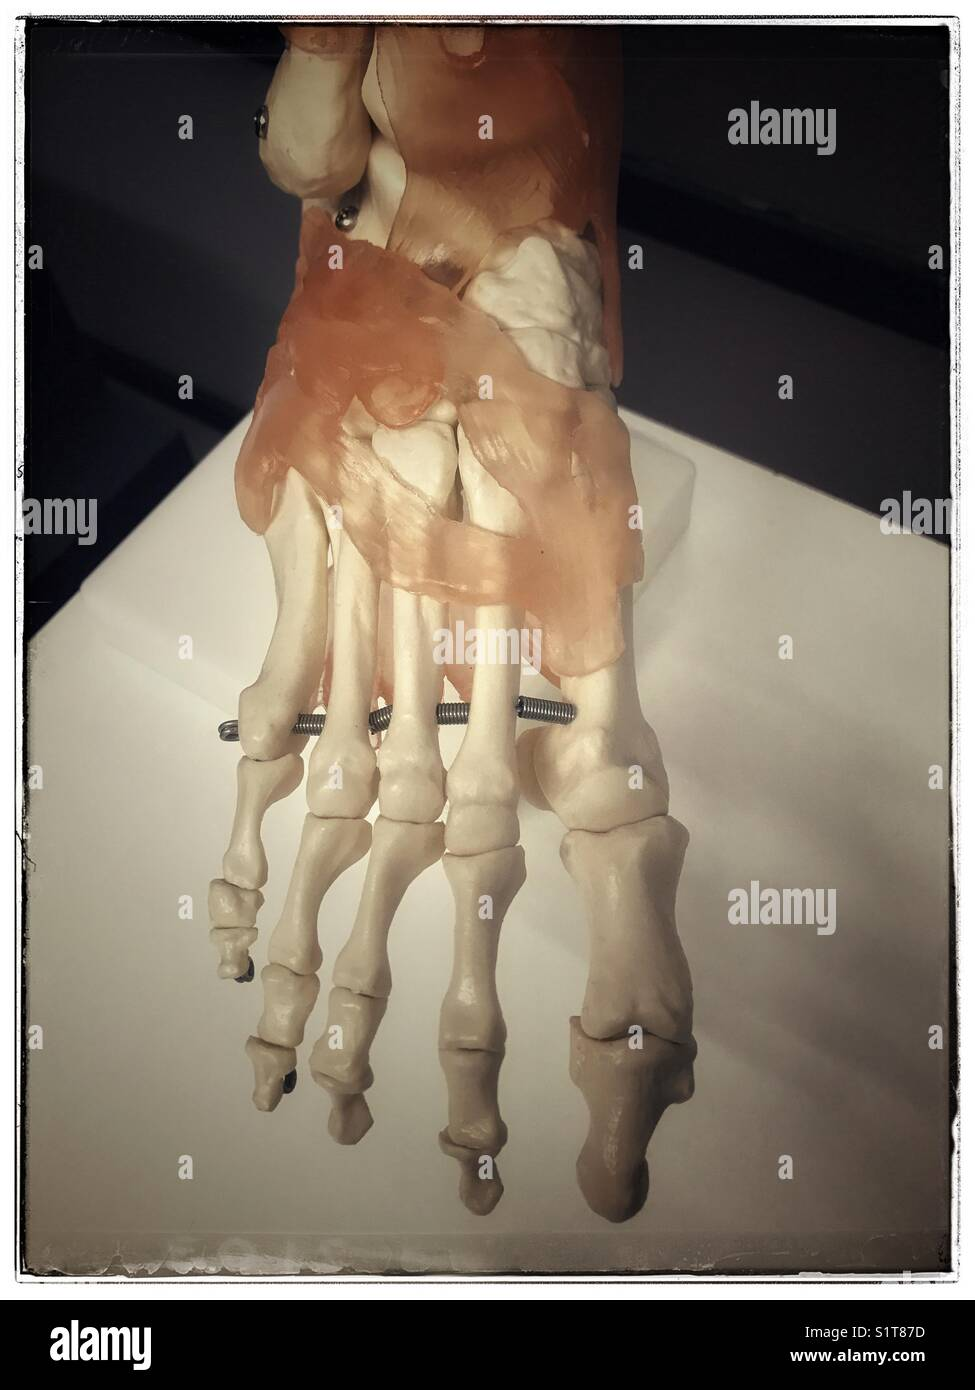 Anatomical model of human foot. - Stock Image